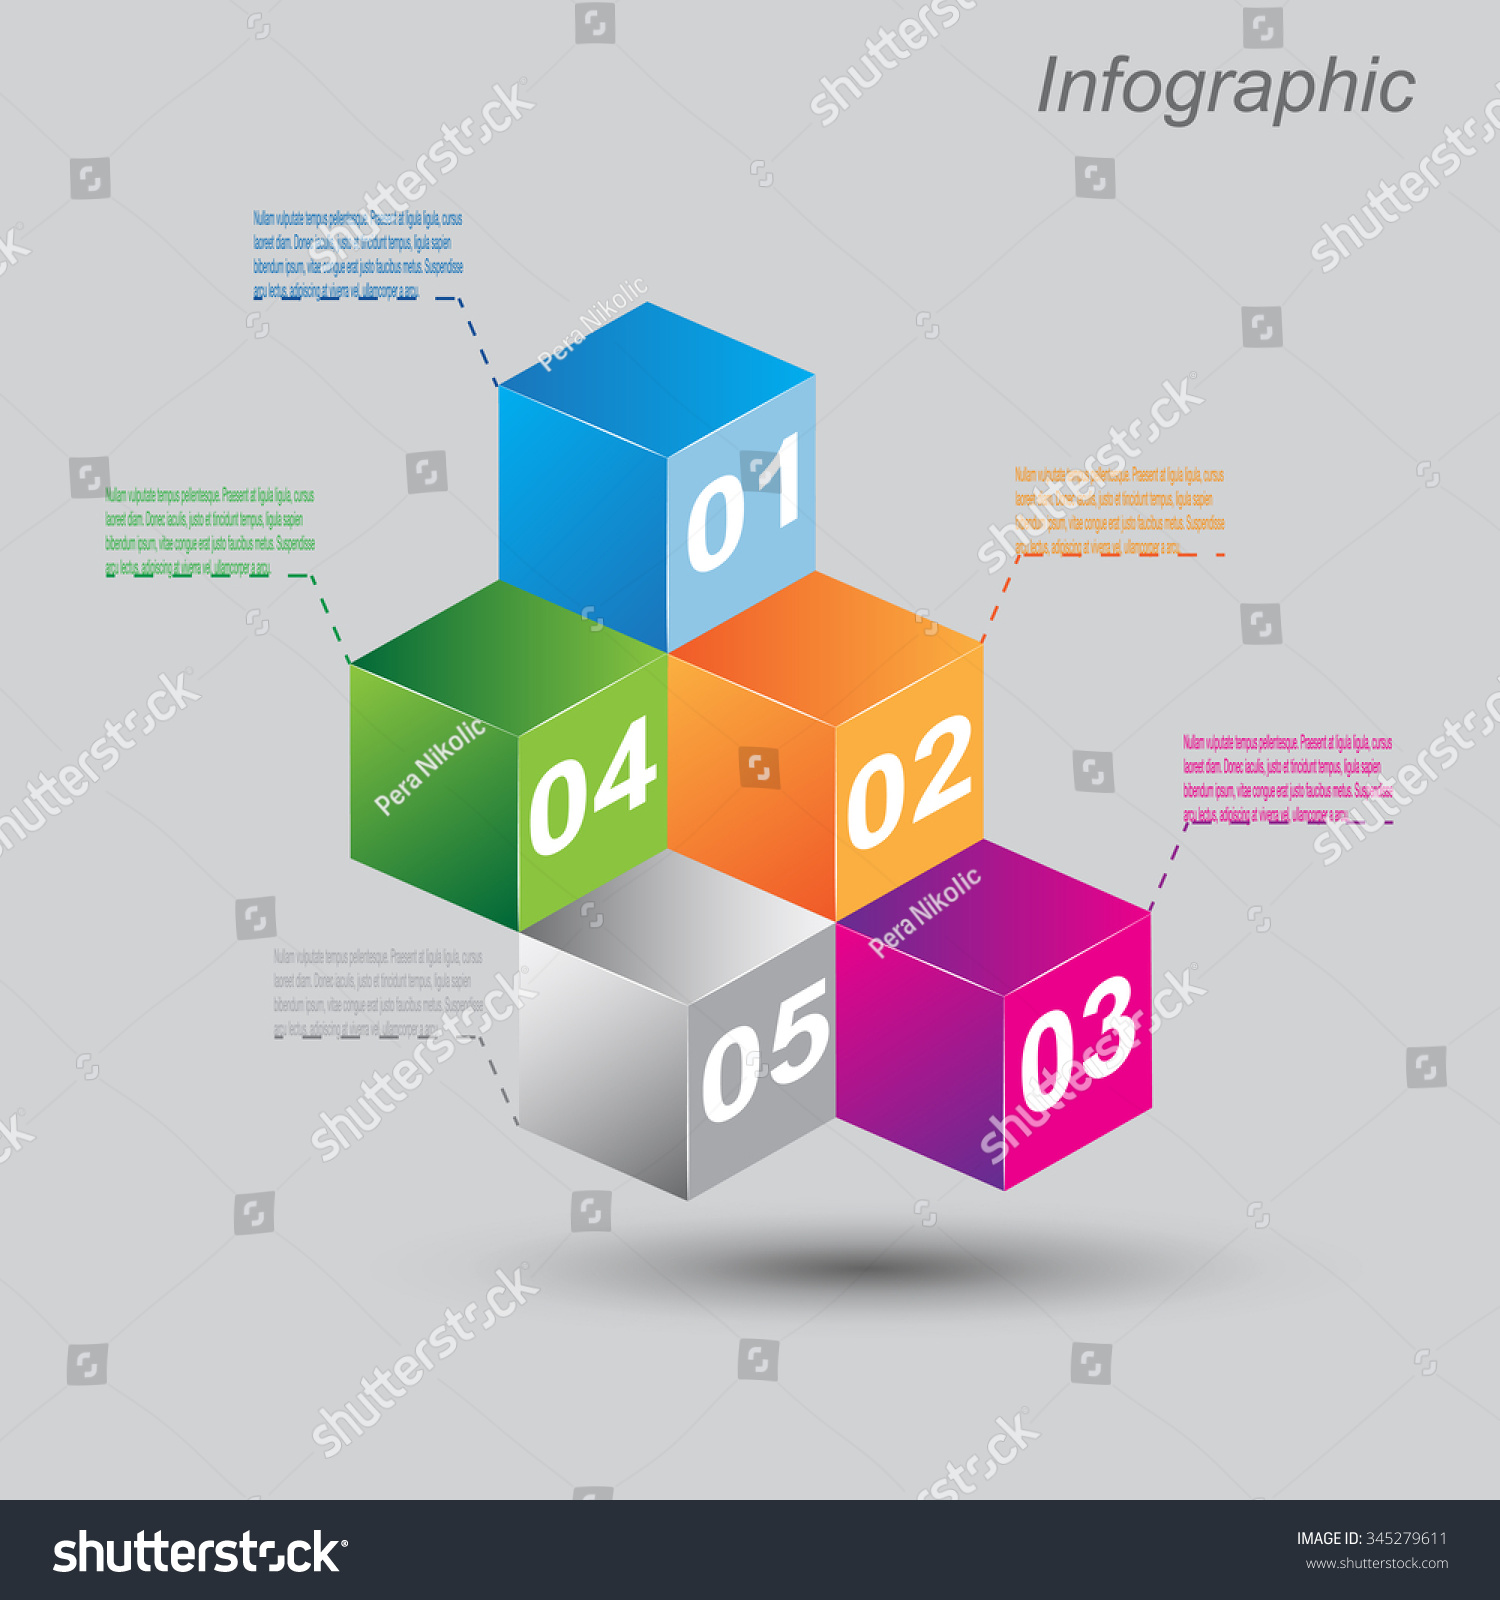 Infographic Design Templates Form 3d Box Stock Vector 345279611 ...